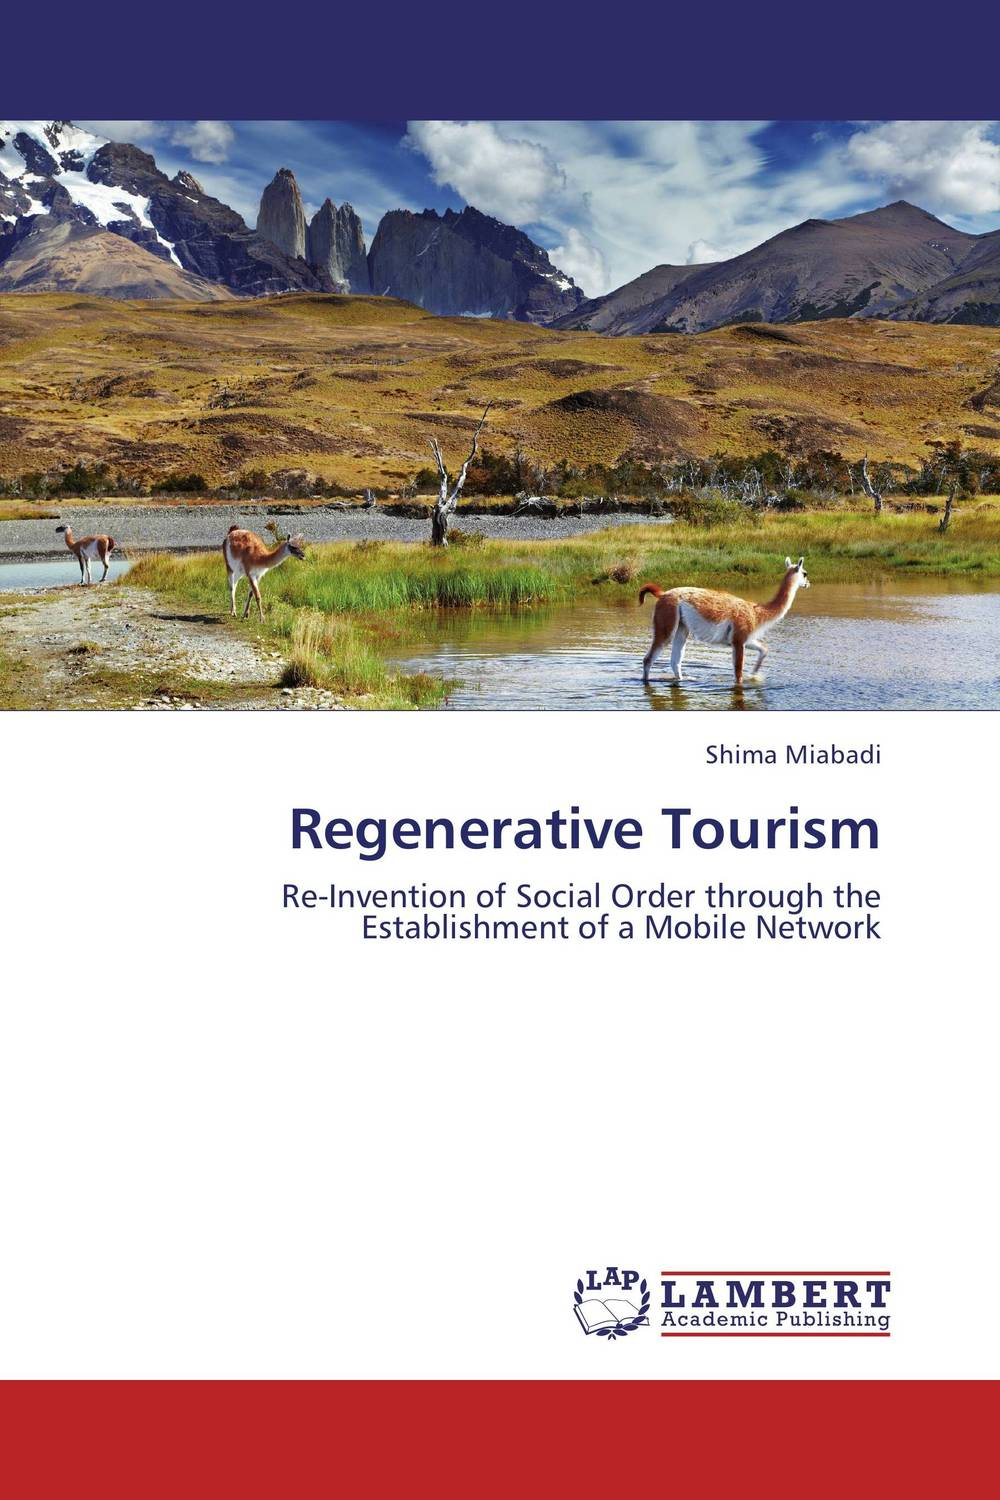 Regenerative Tourism presidential nominee will address a gathering